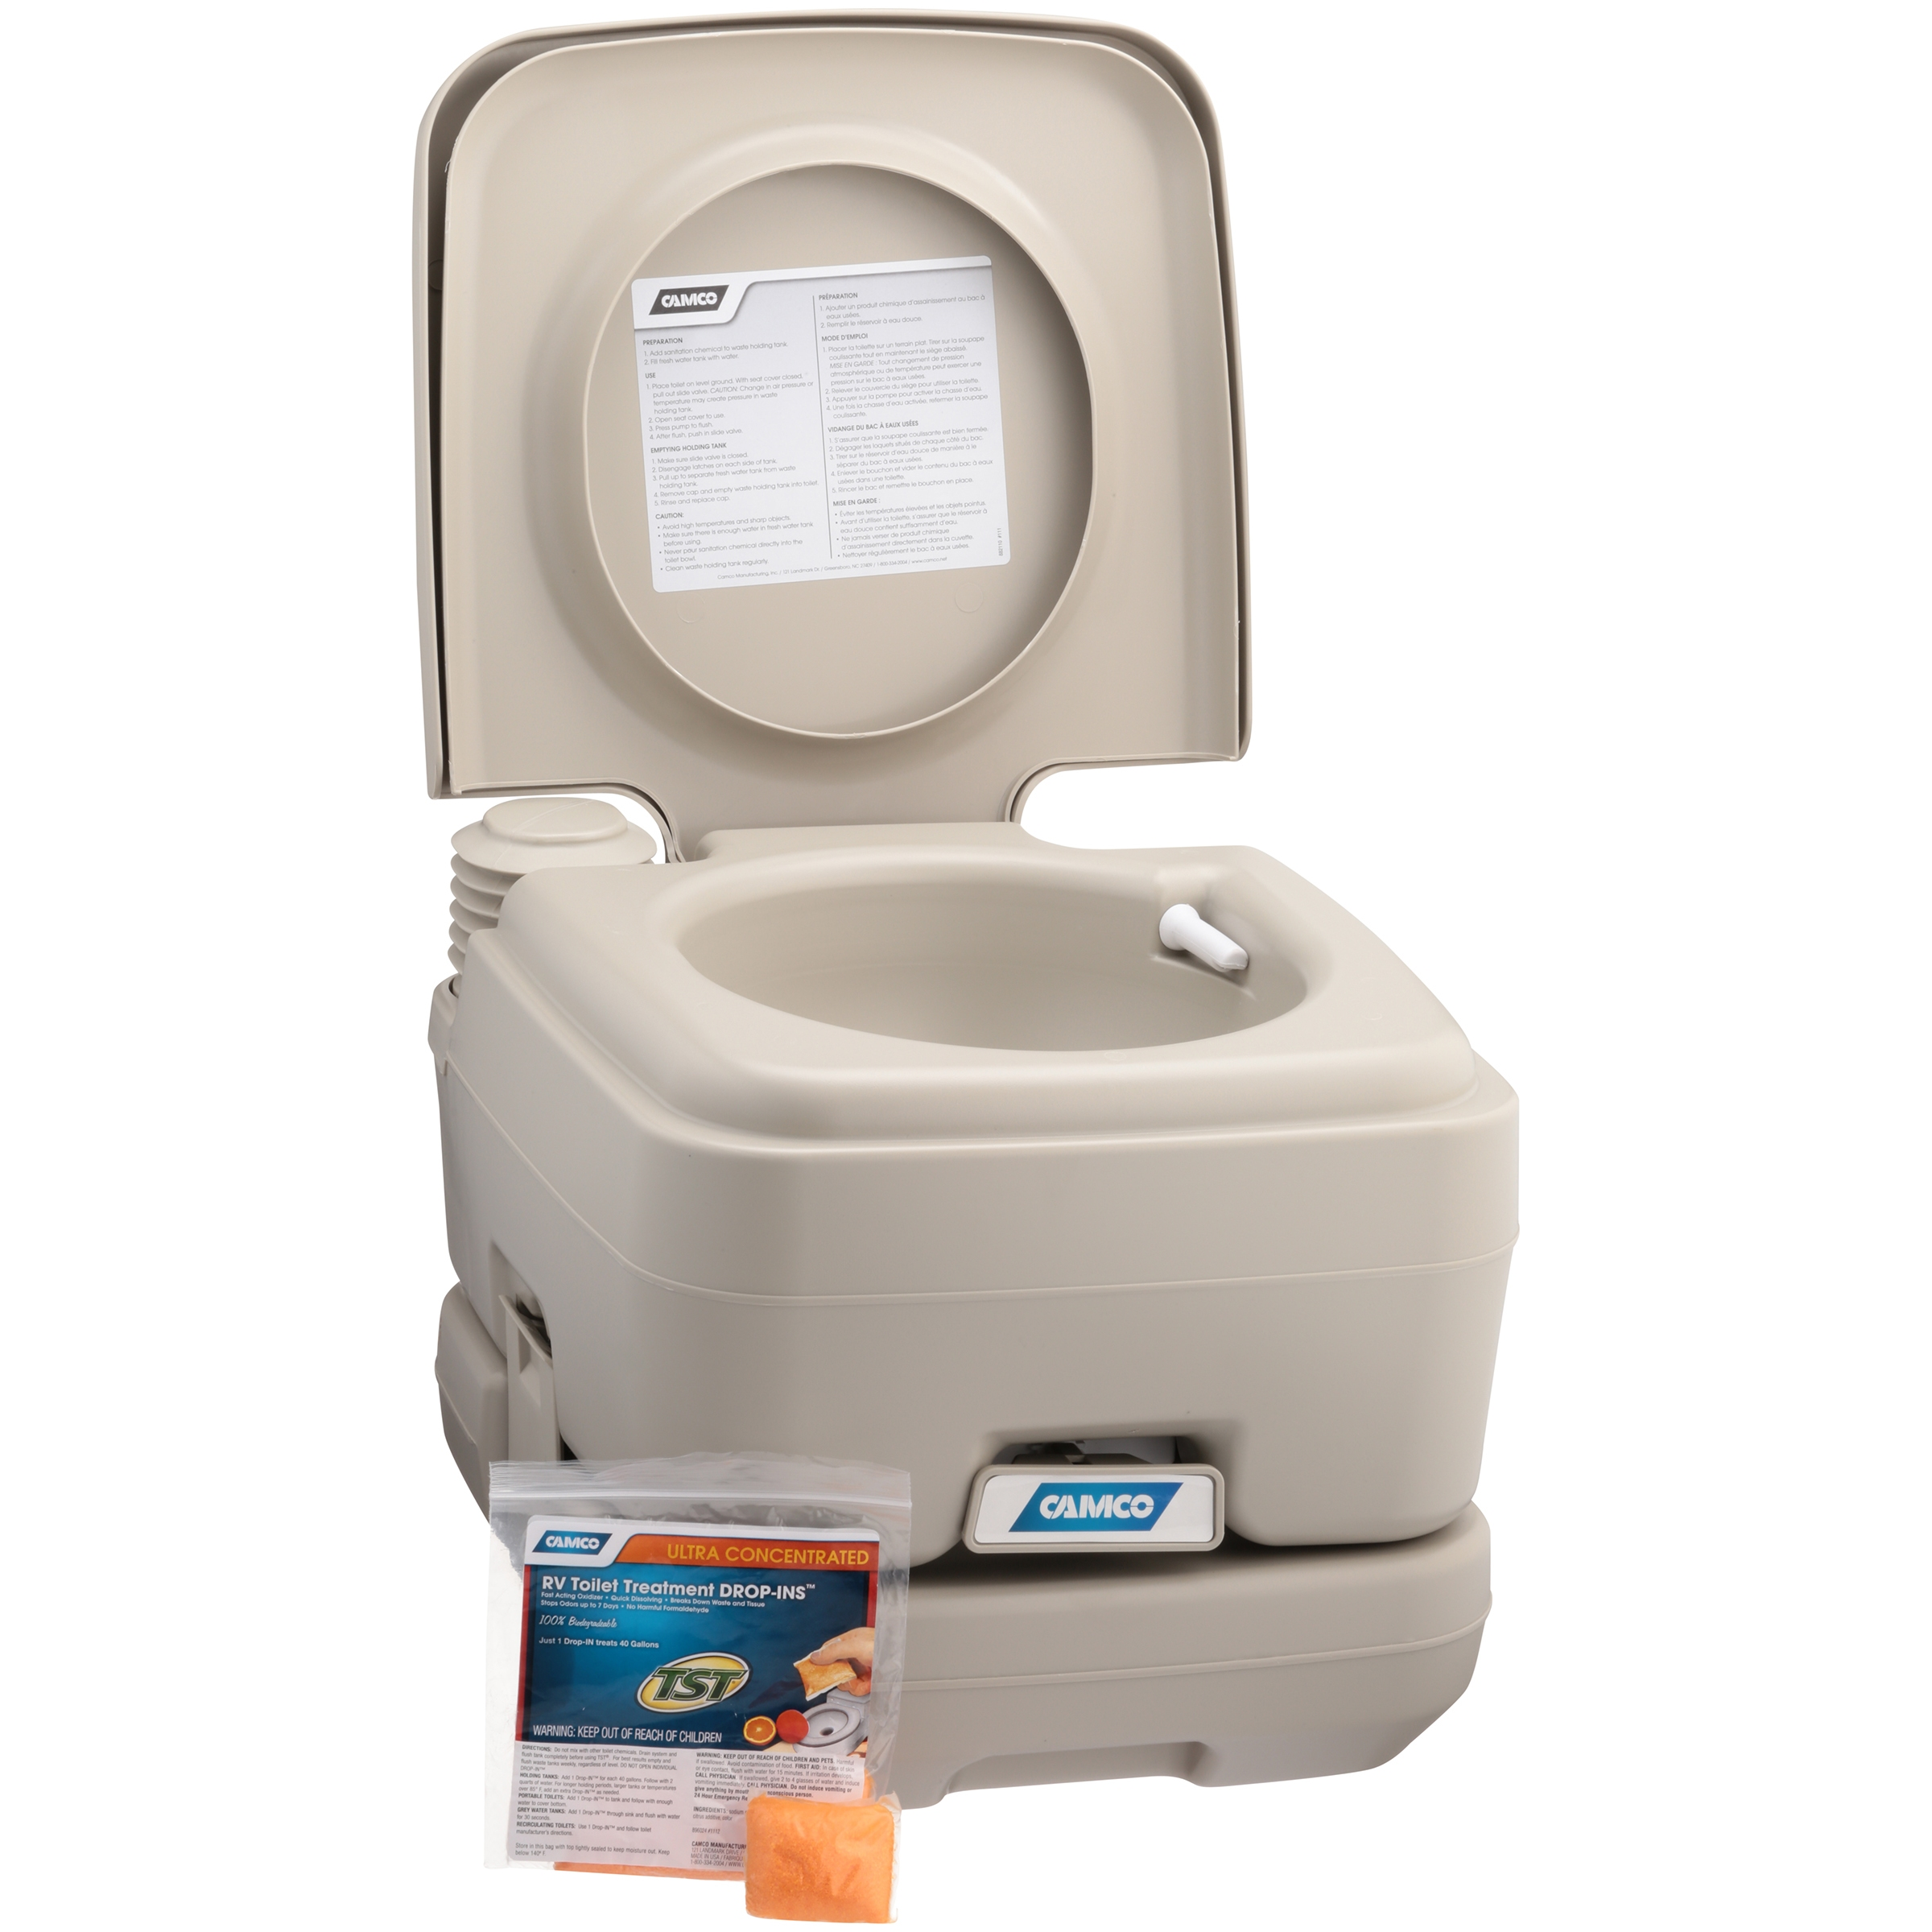 Camco Portable Toilet with RV Toilet Treatment DROP-INS